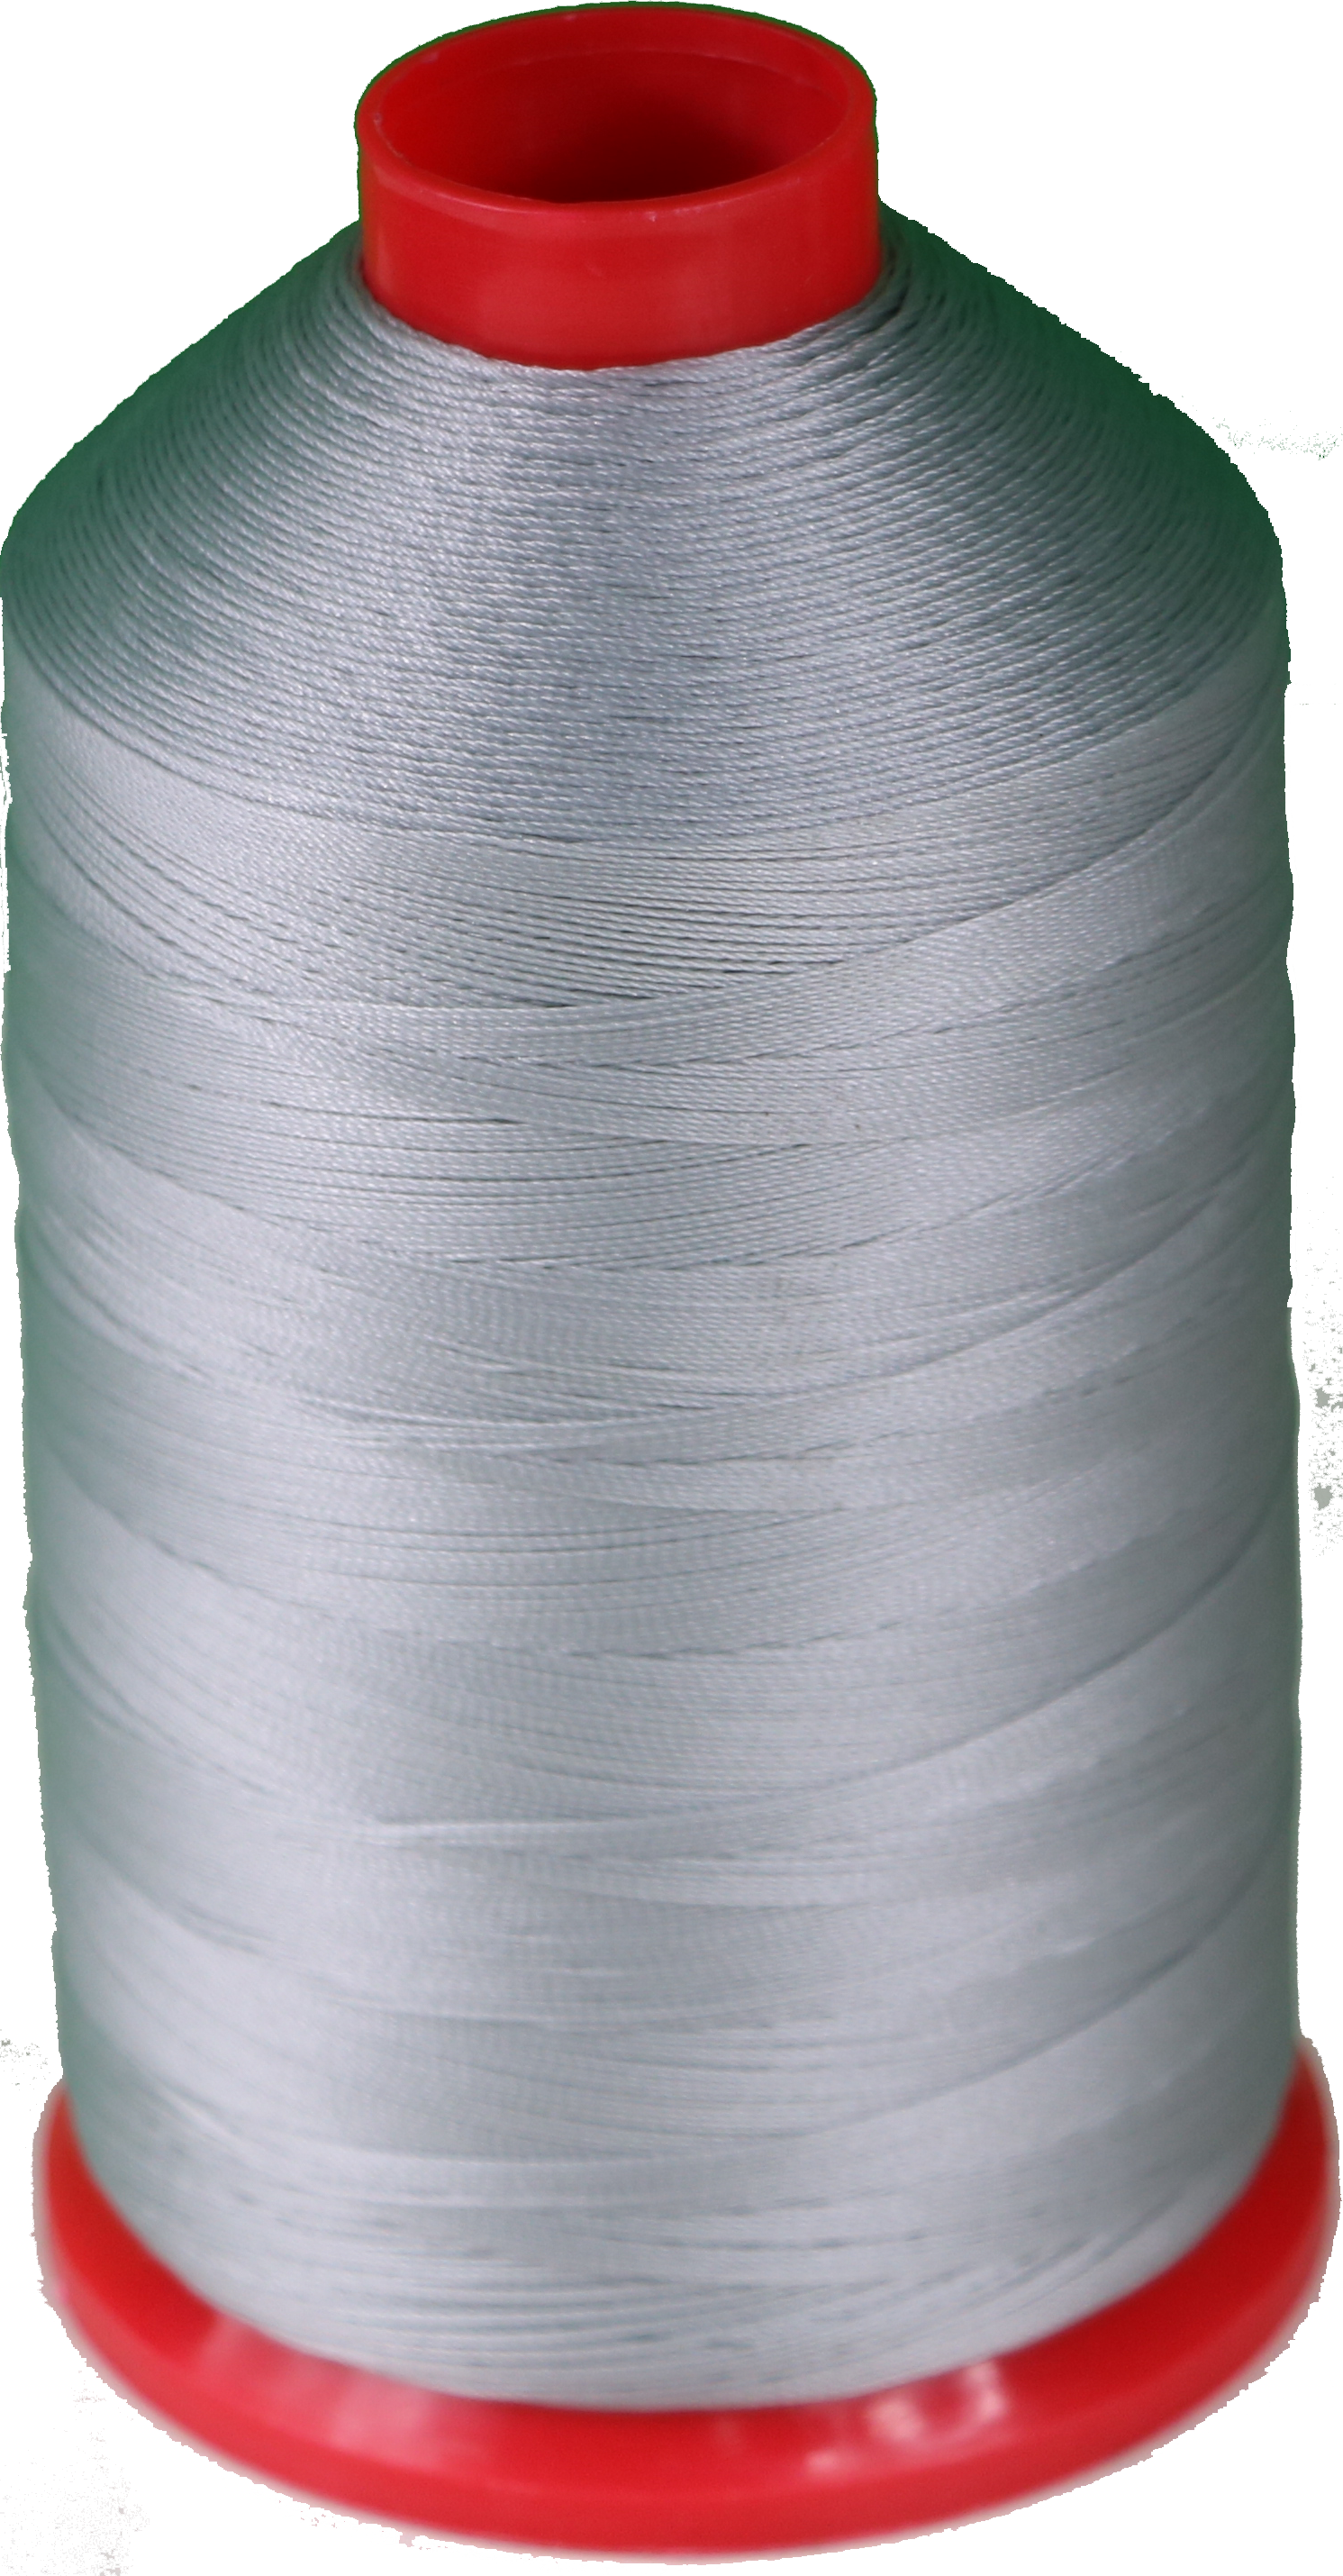 Tex 70, Color 4036 (grey) nylon thread 250G Spool